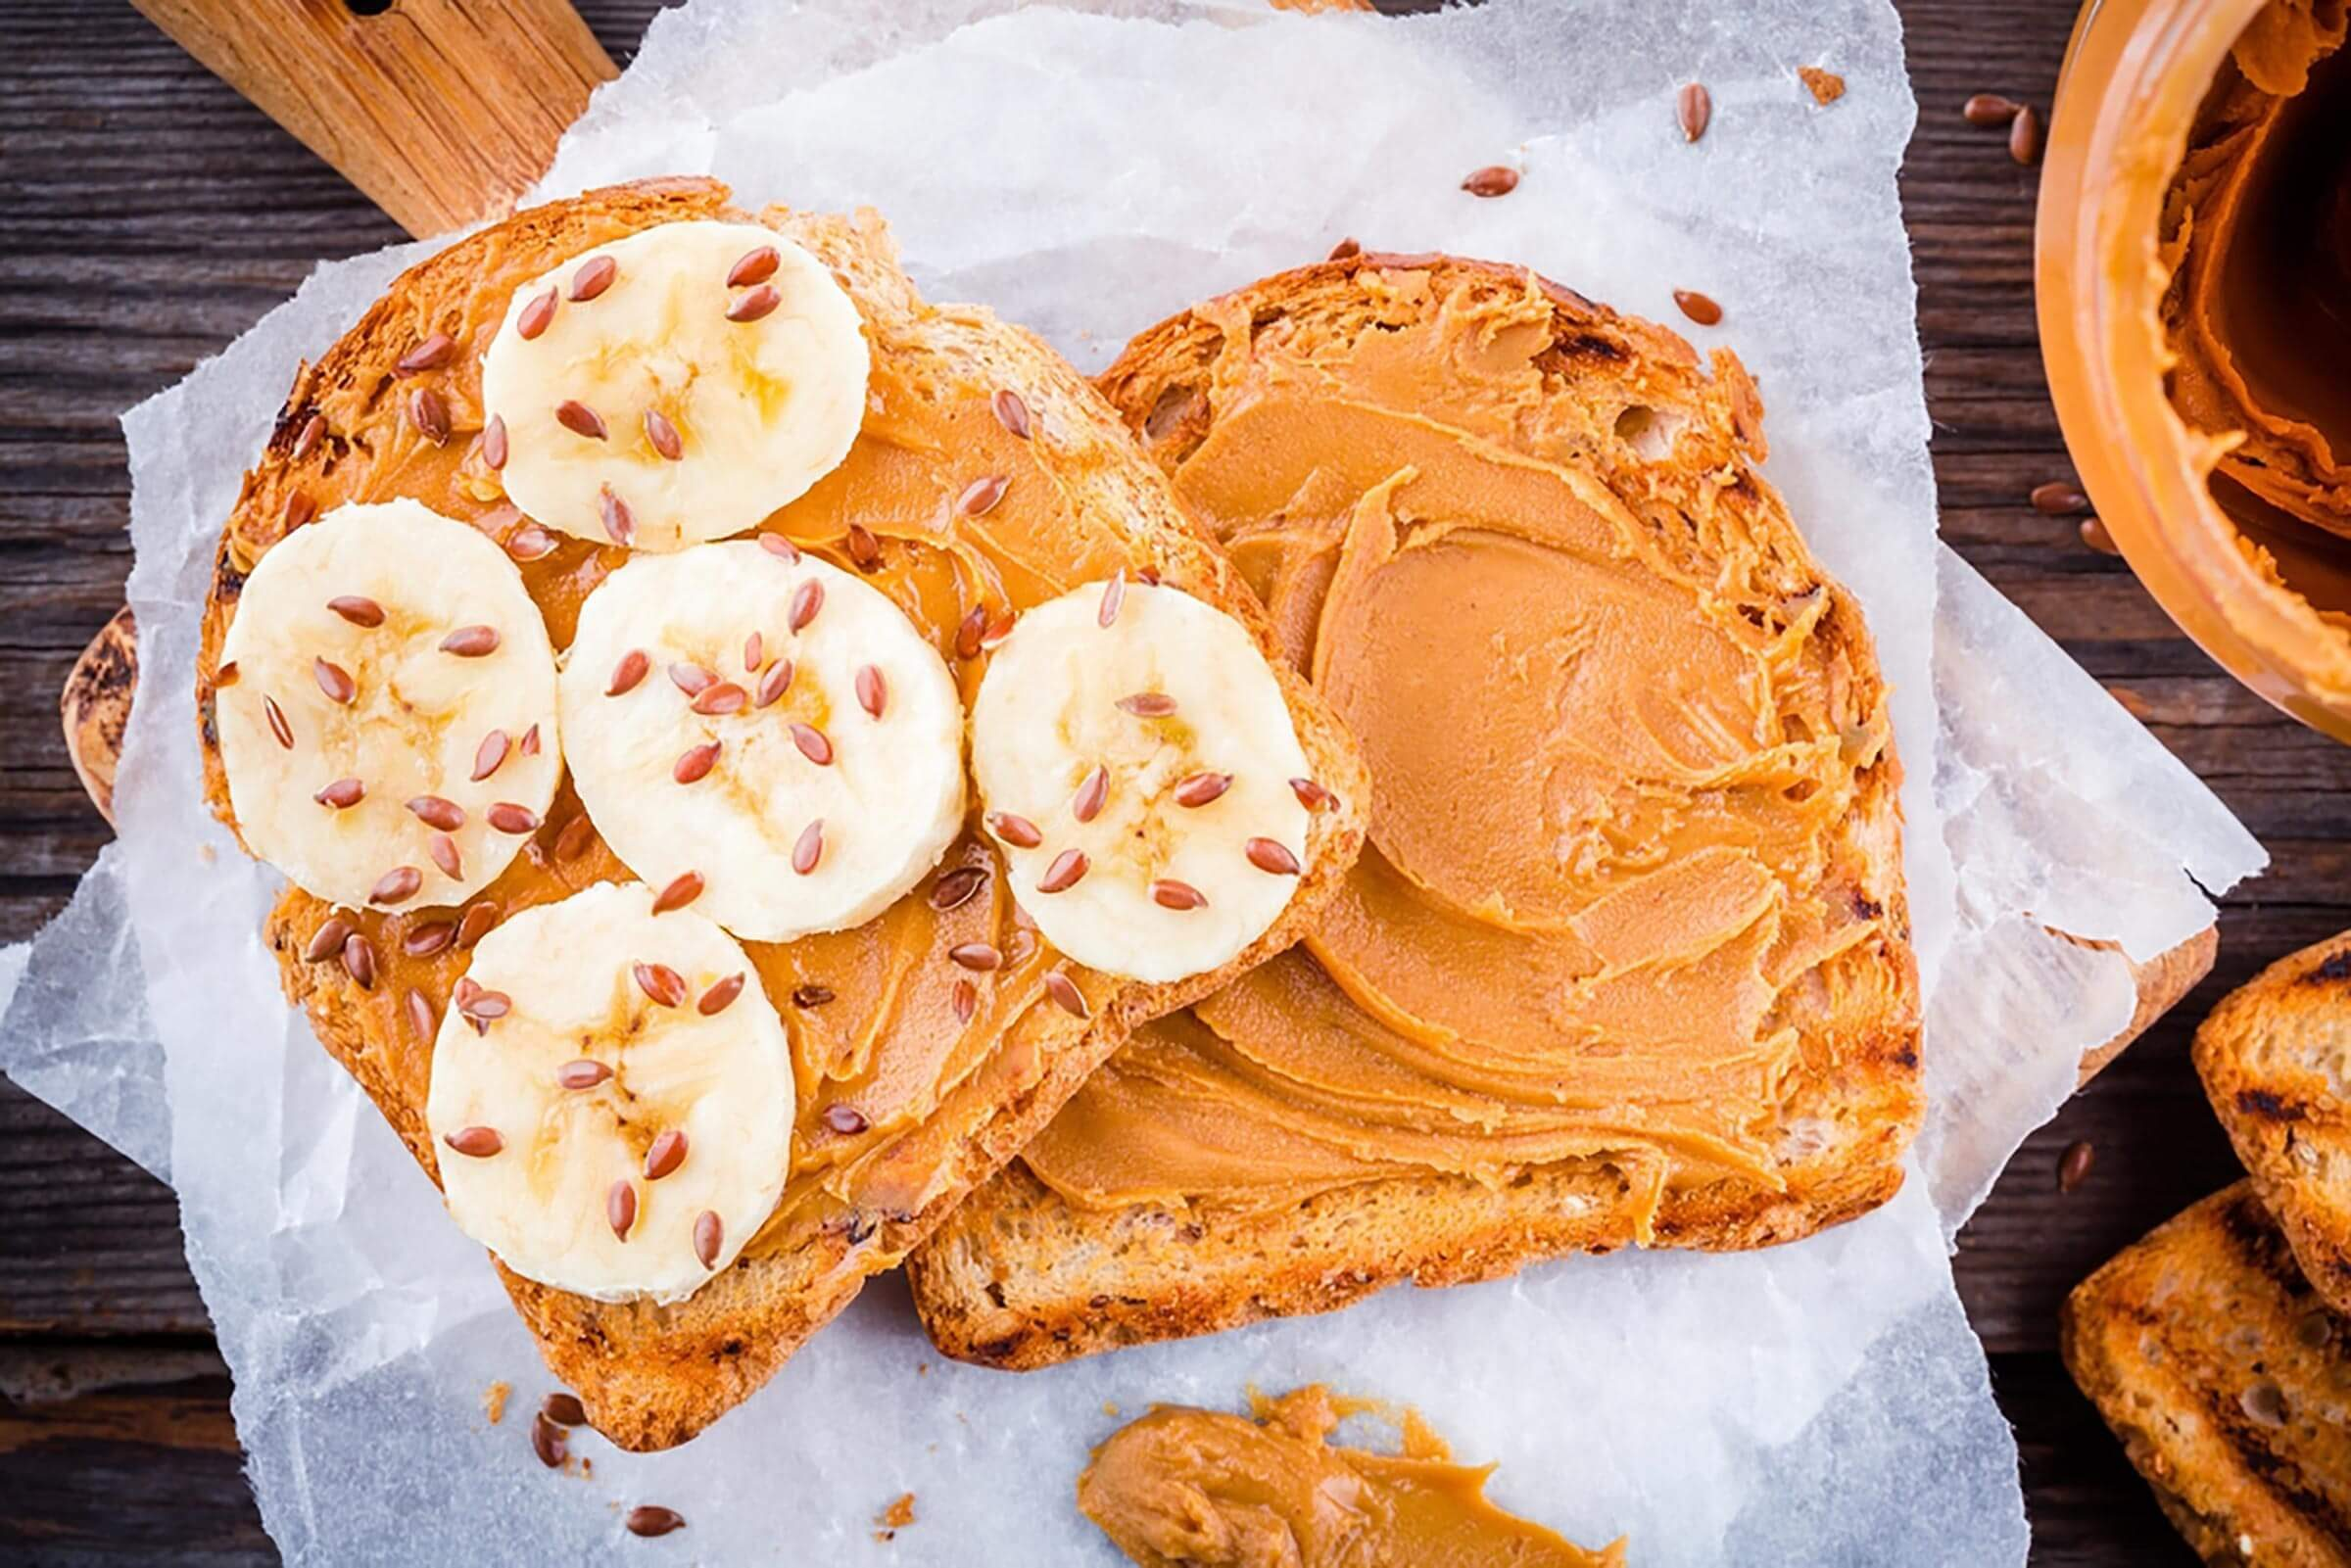 flaxseeds | toast with peanut butter, banana, and flaxseeds